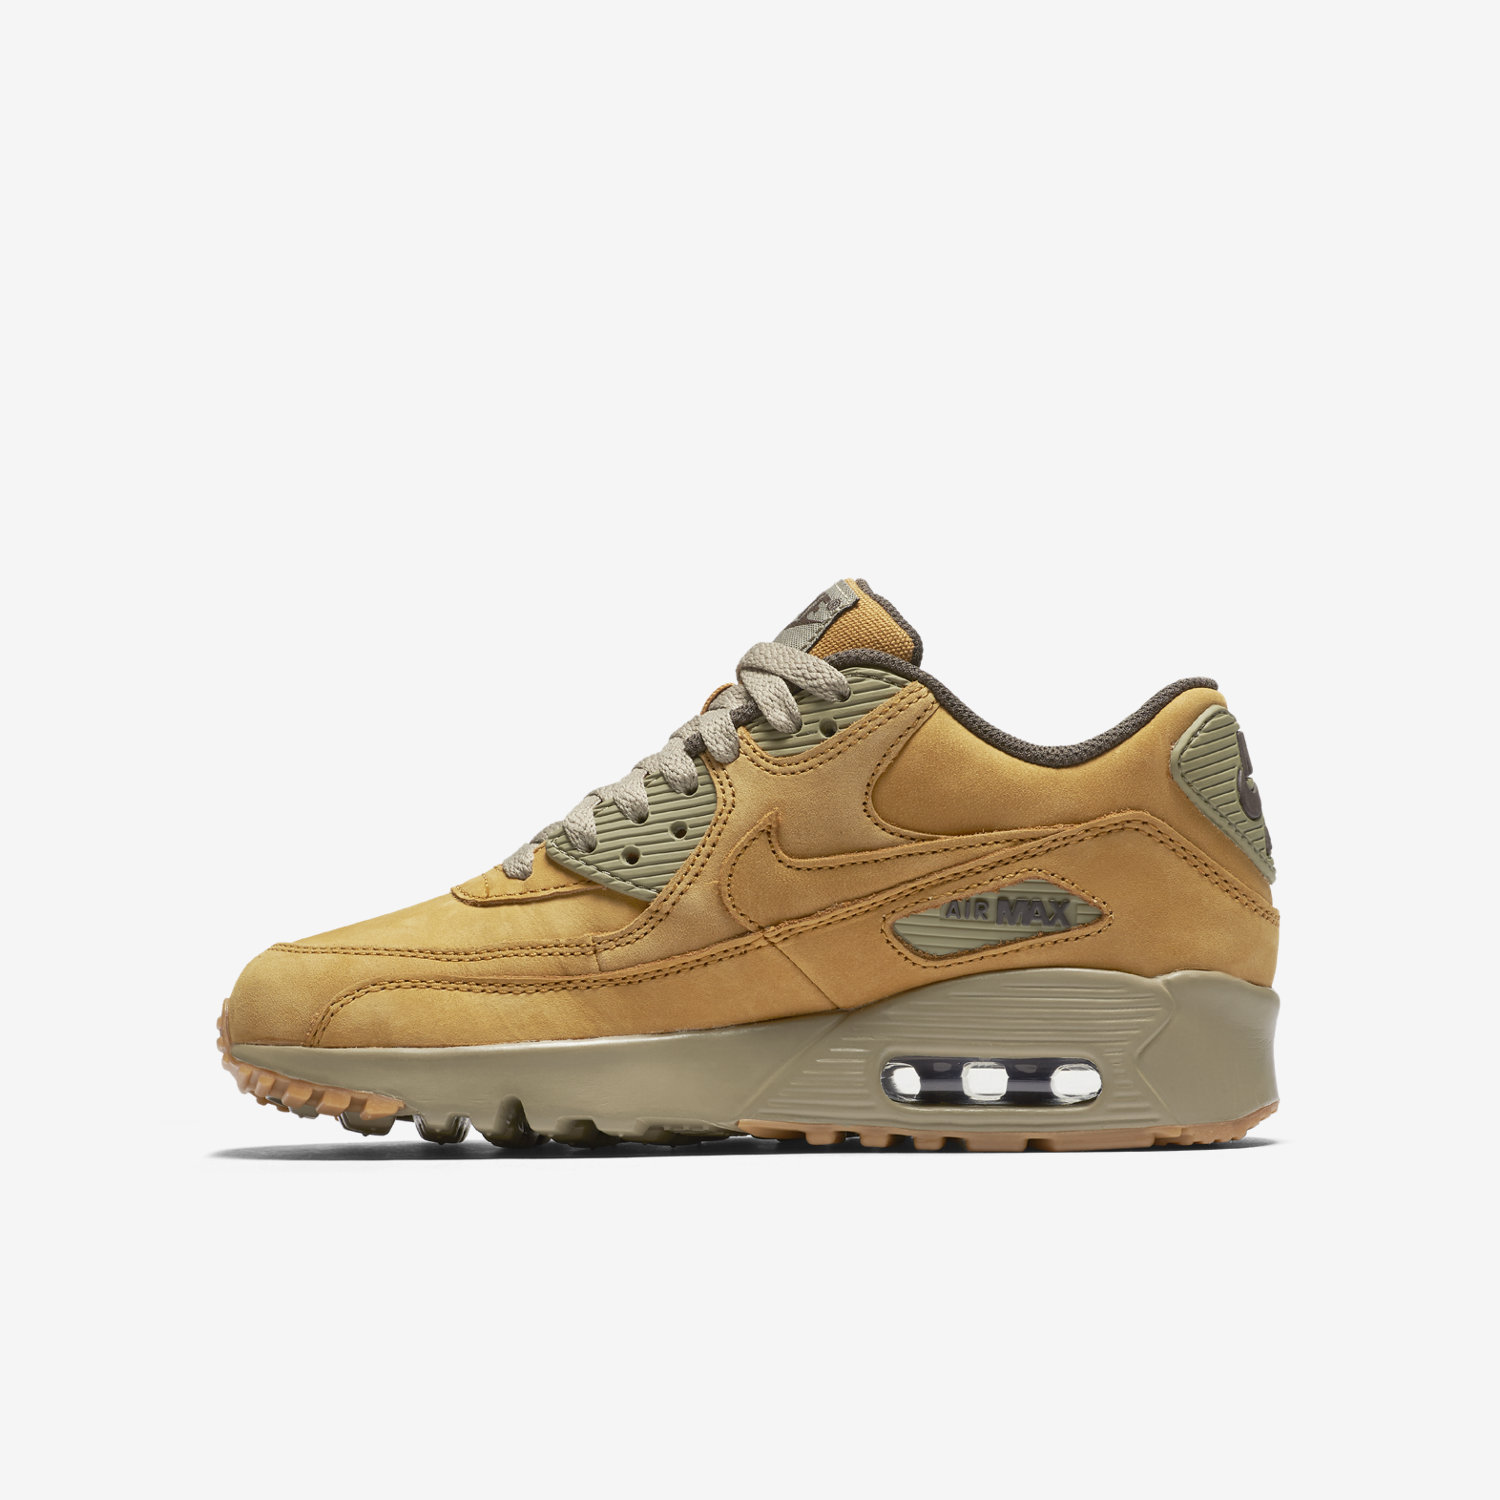 Particulier nike air max 90 vs 1 4WK77